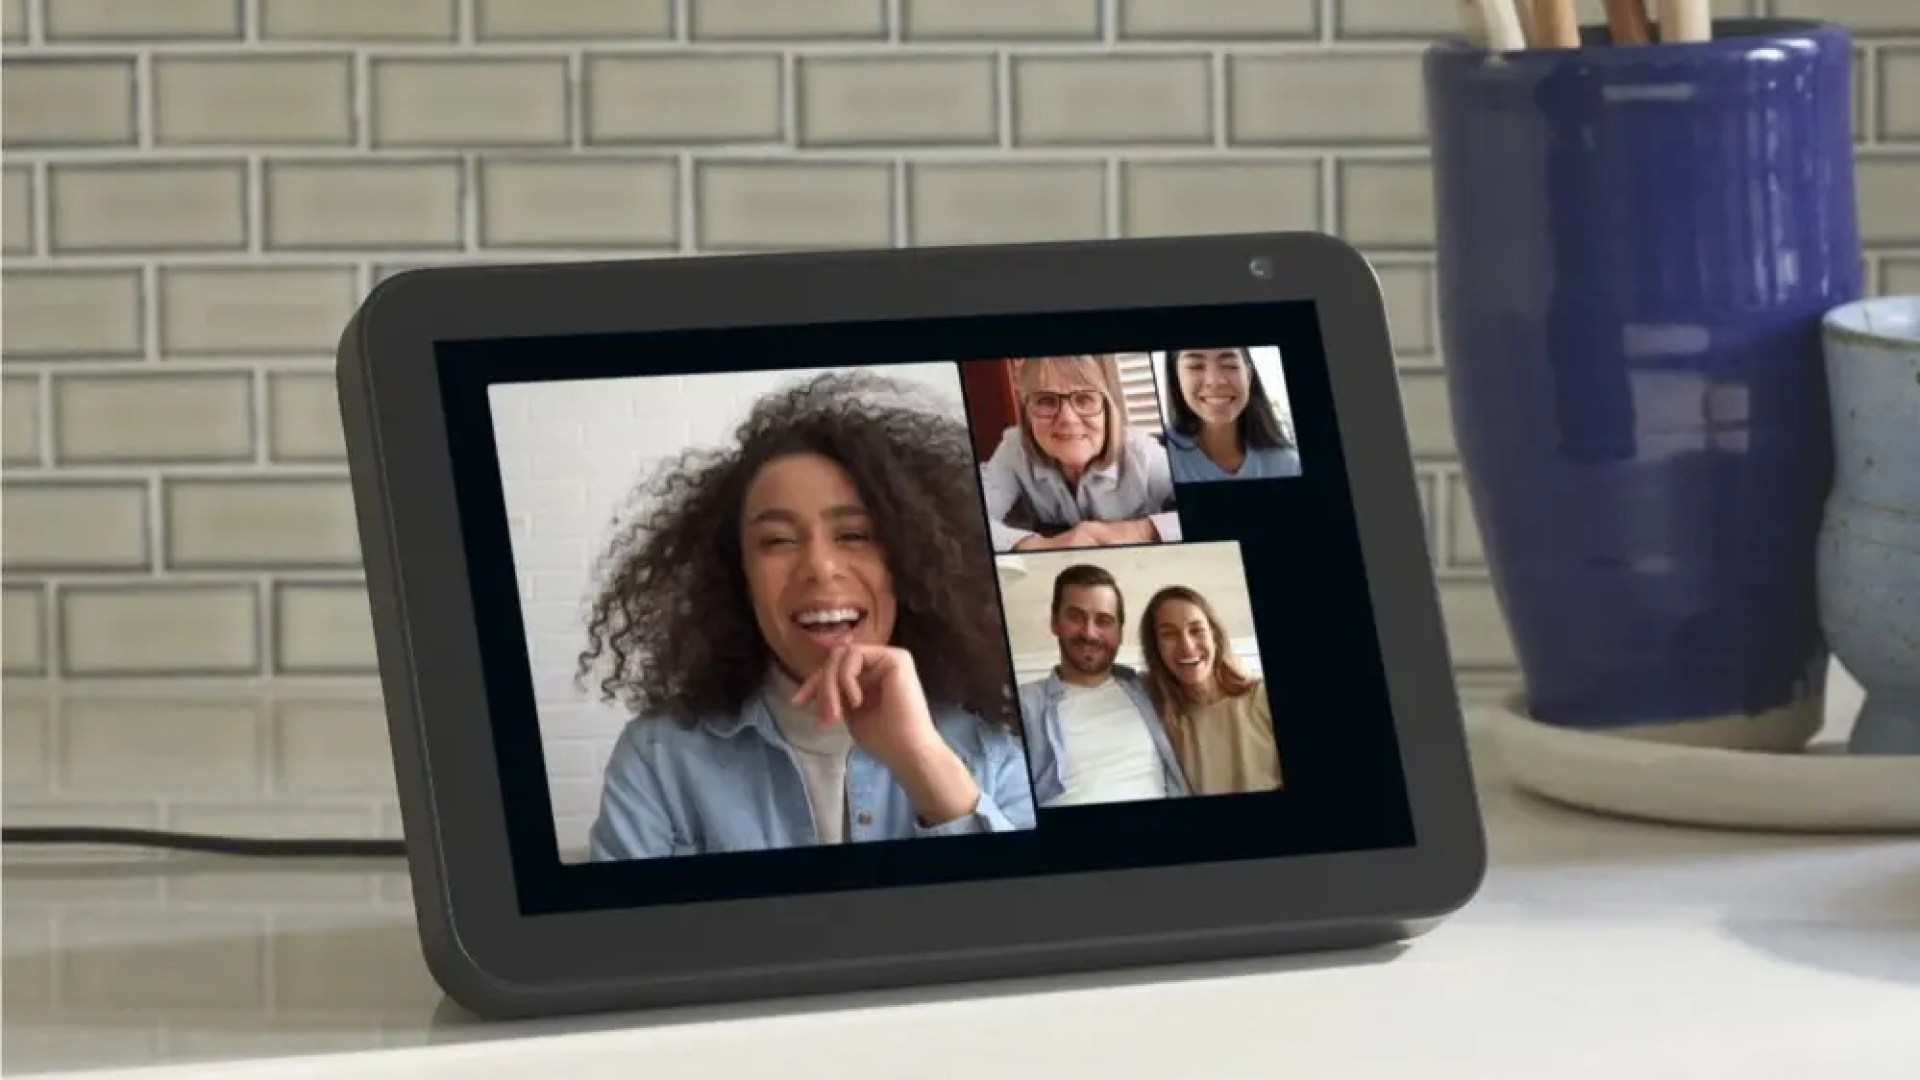 Group call on Amazon Echo device